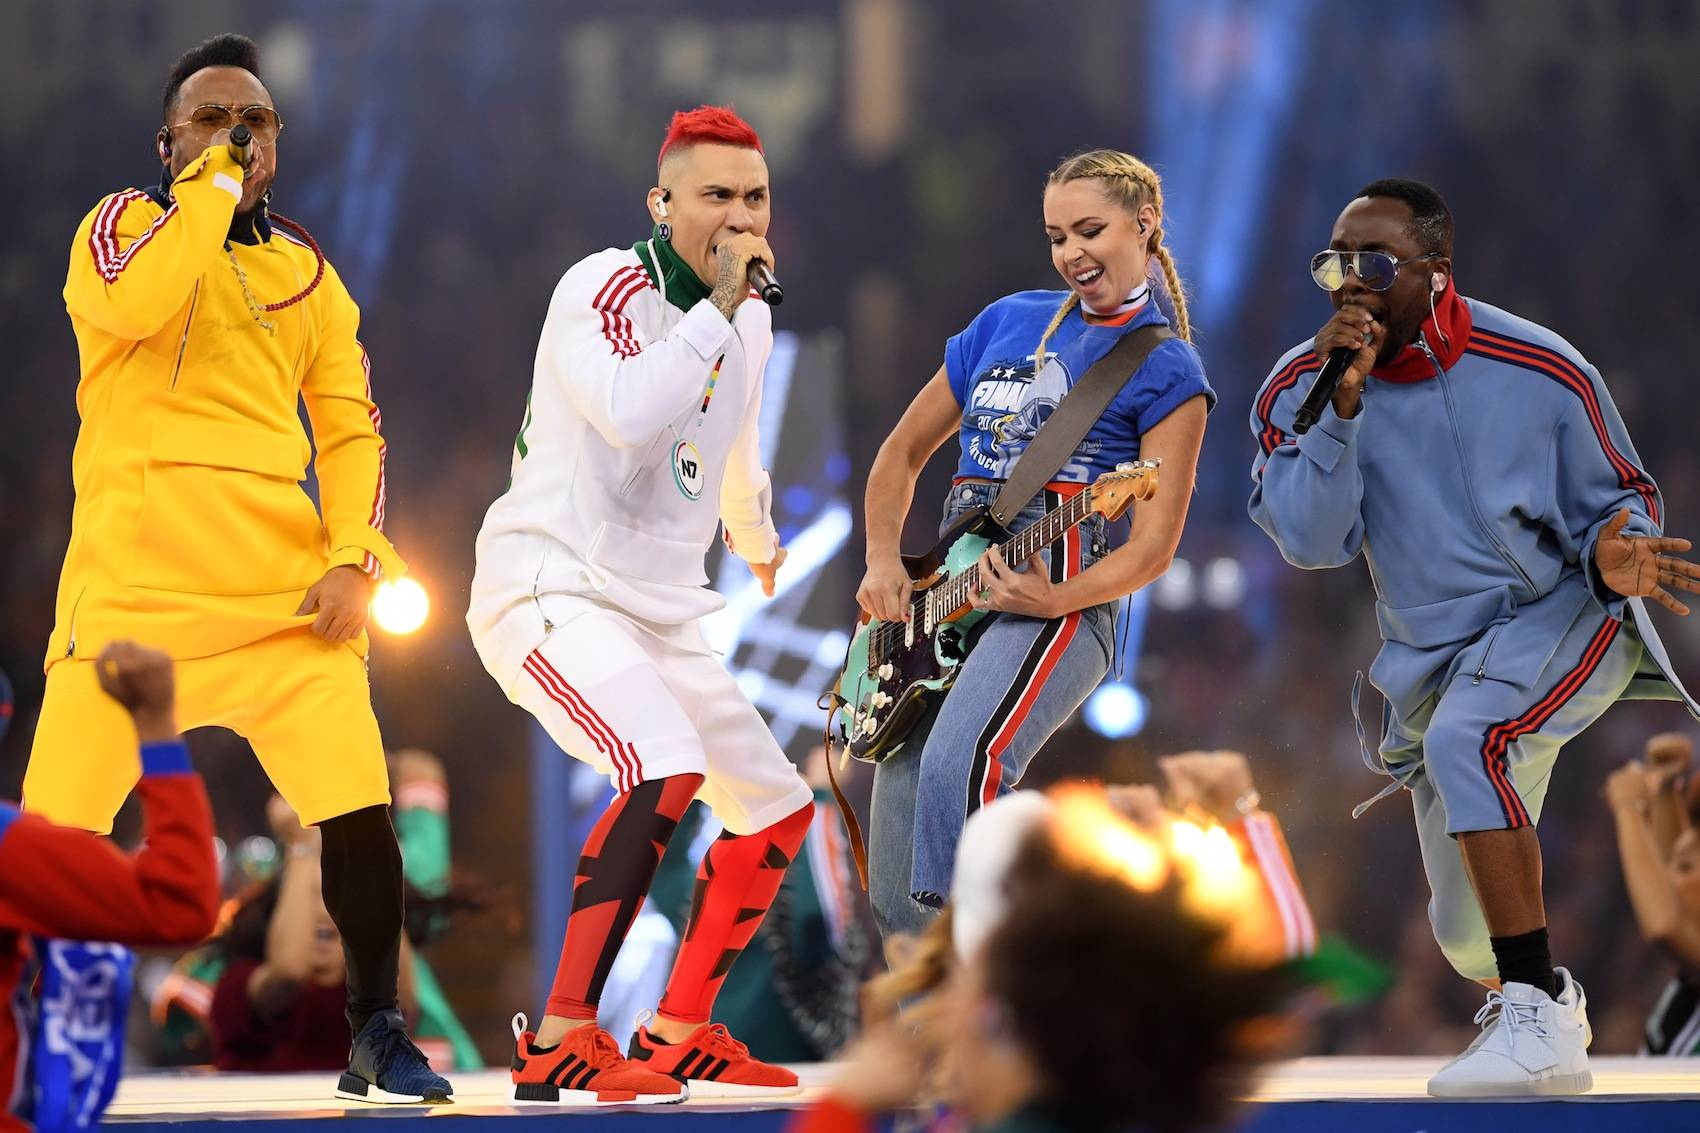 GETTY IMAGES Desangelada inauguración de la Champions League con Black Eyed Peas